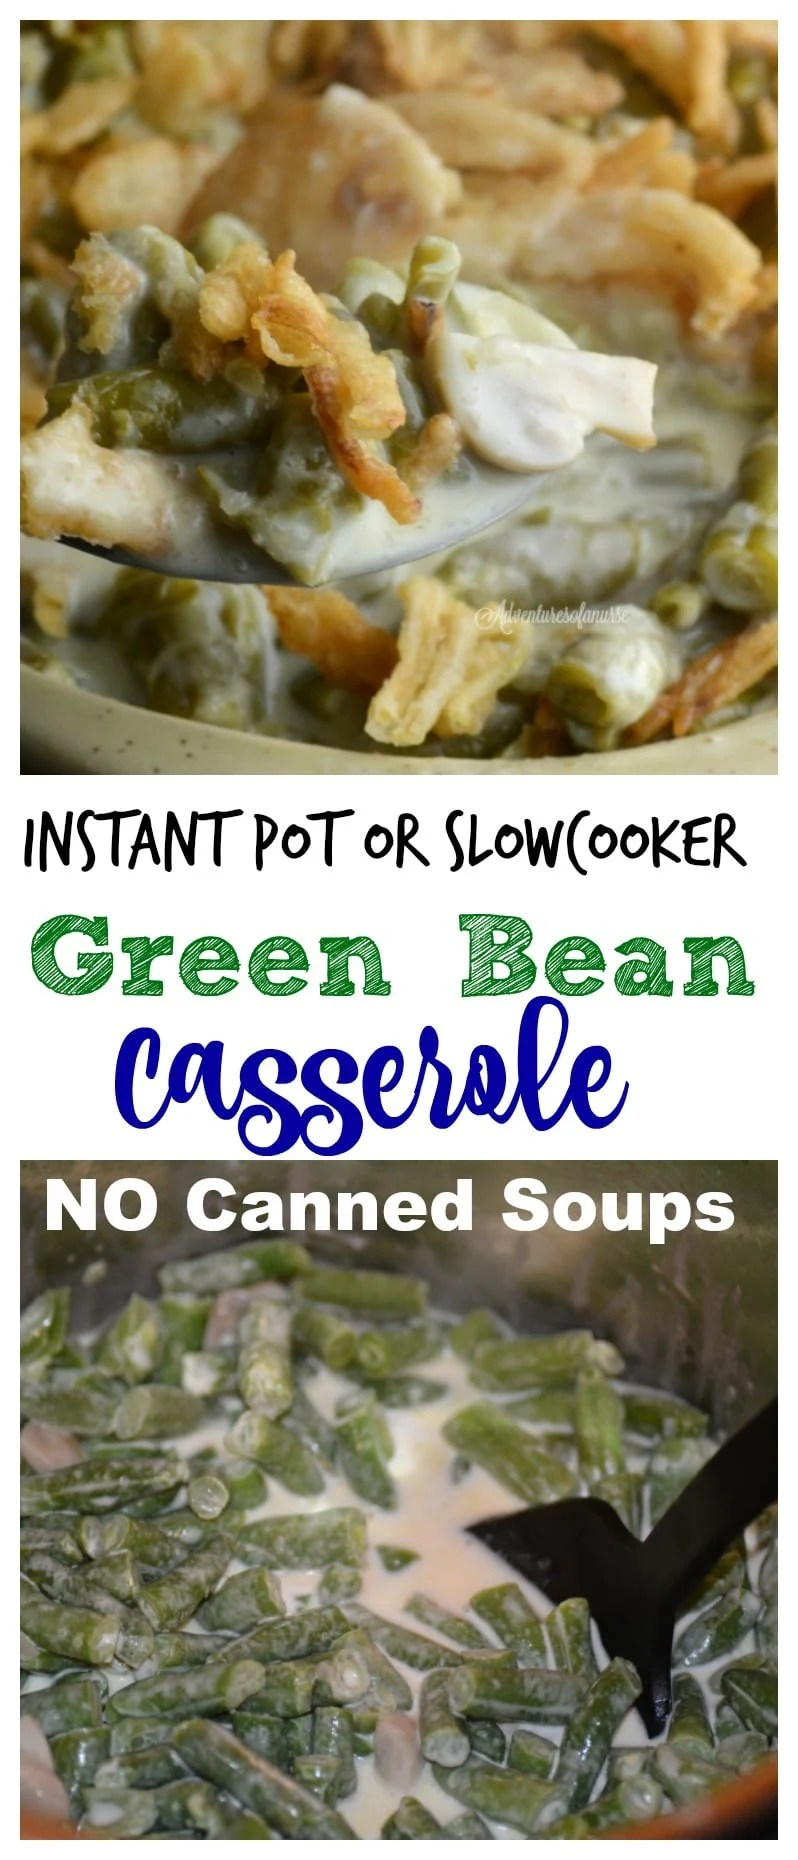 Instant Pot or Slow cooker Green Bean Casserole